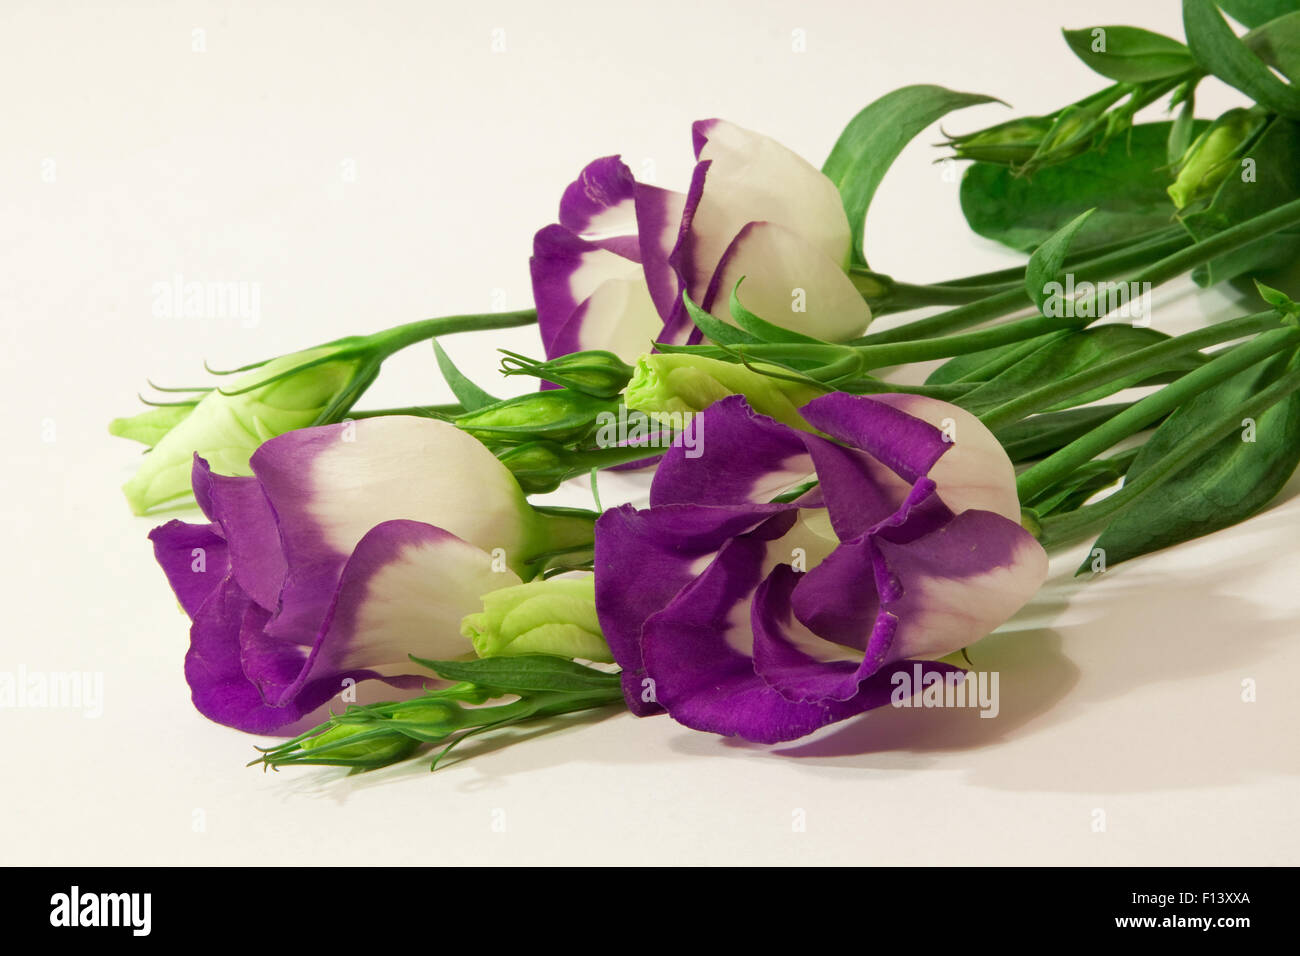 Blue Lisianthus Flowers.  Lisianthus flowers on a white background. - Stock Image